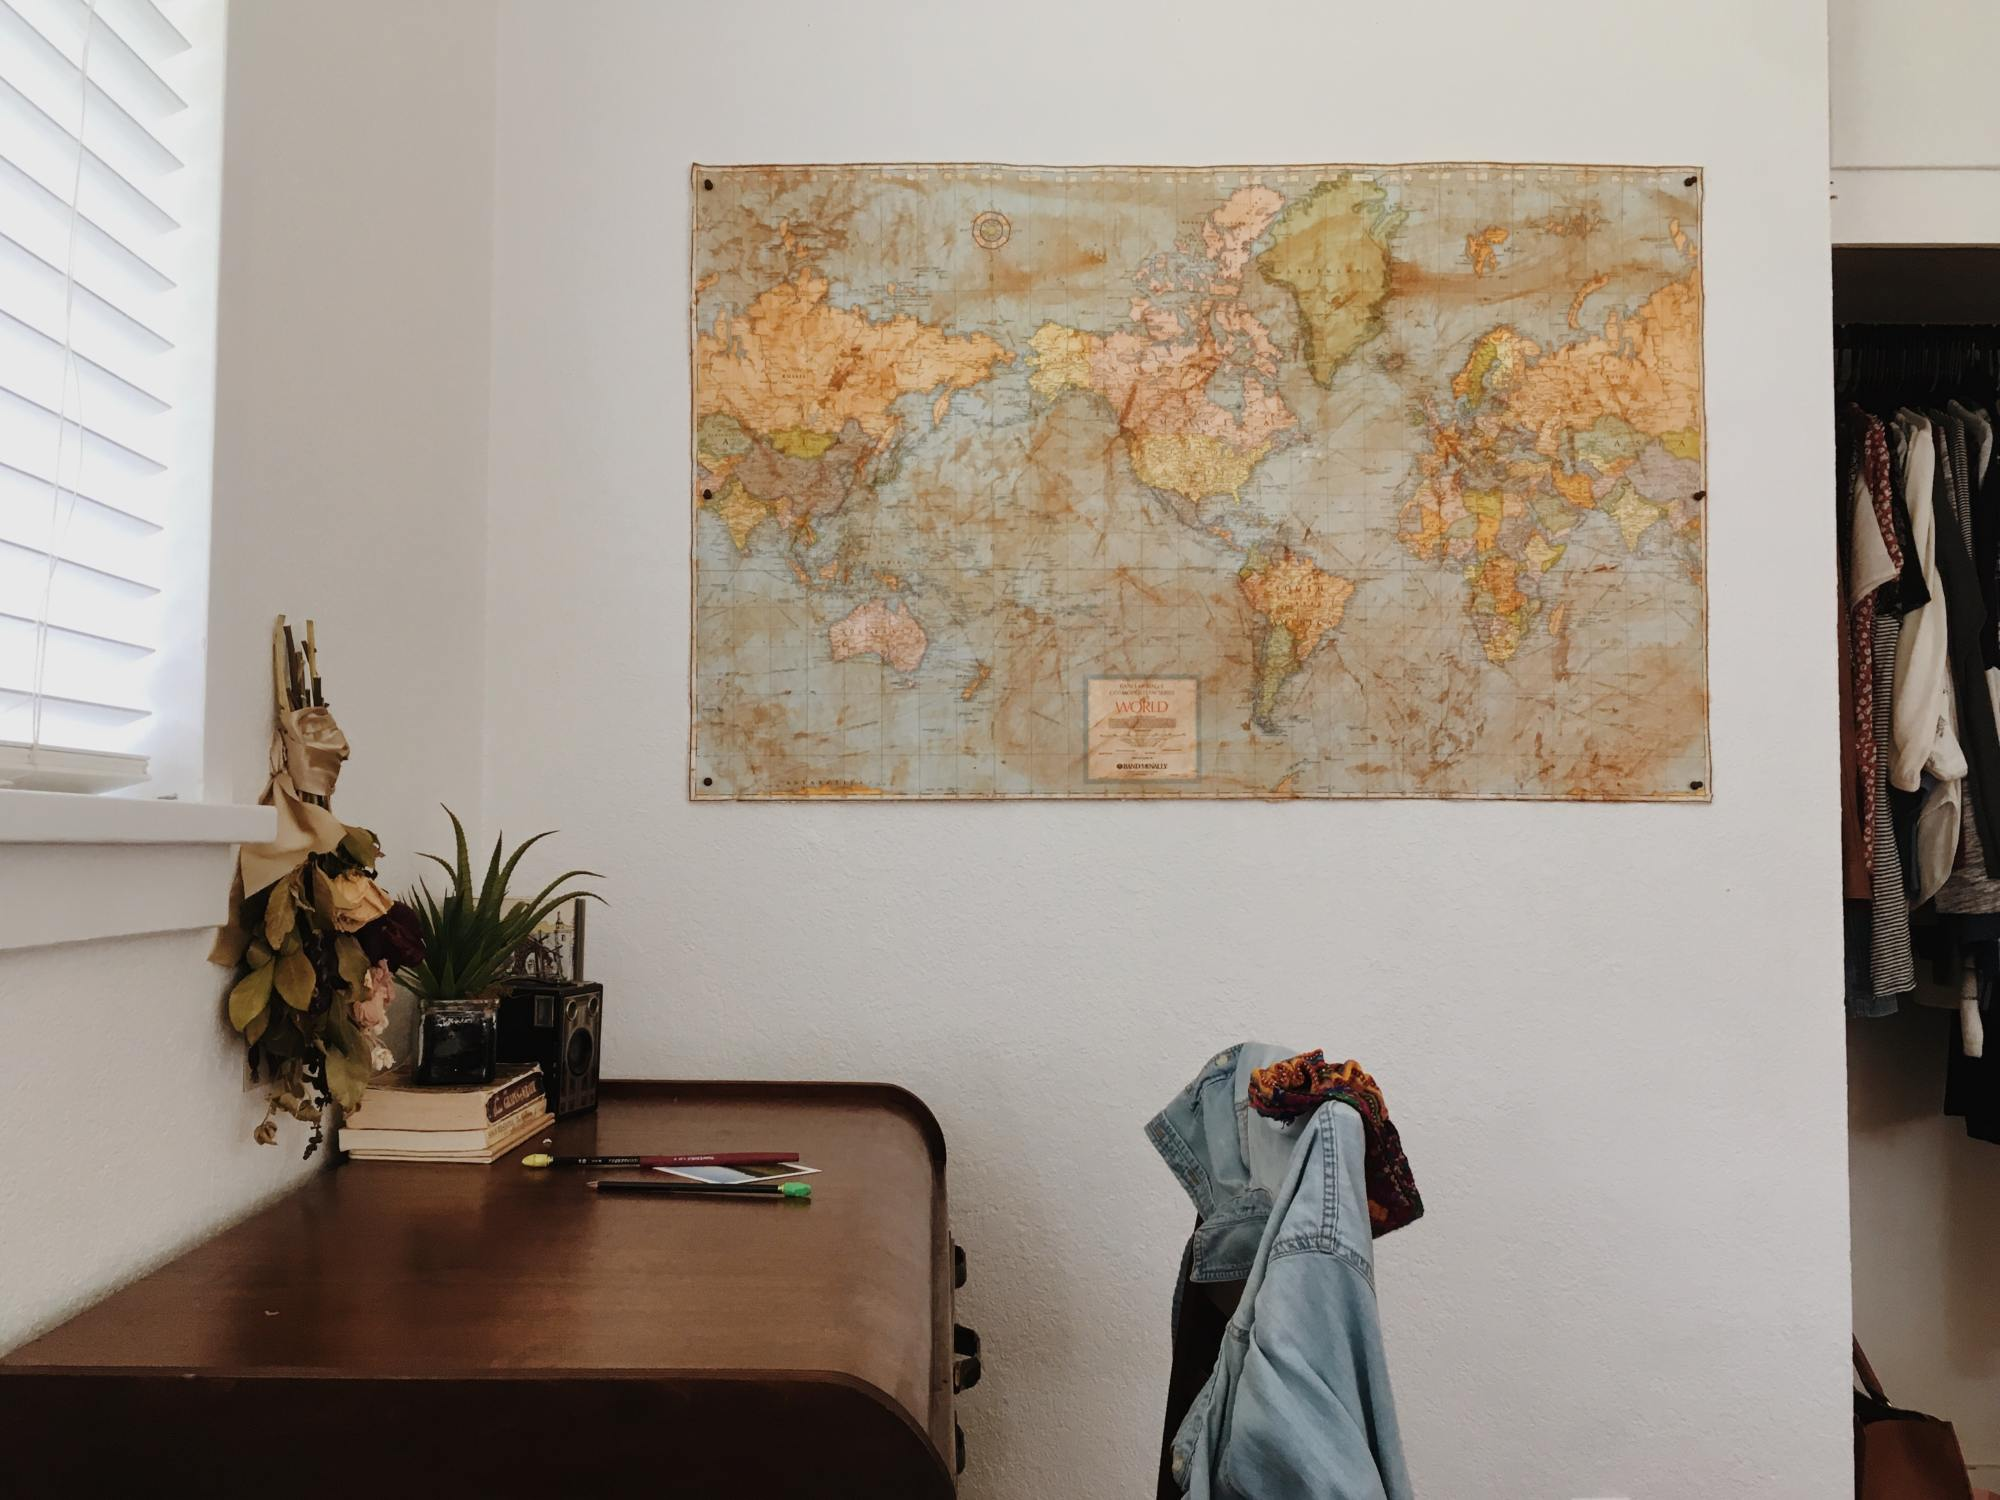 Wooden desk against a wall that has a world map hanging